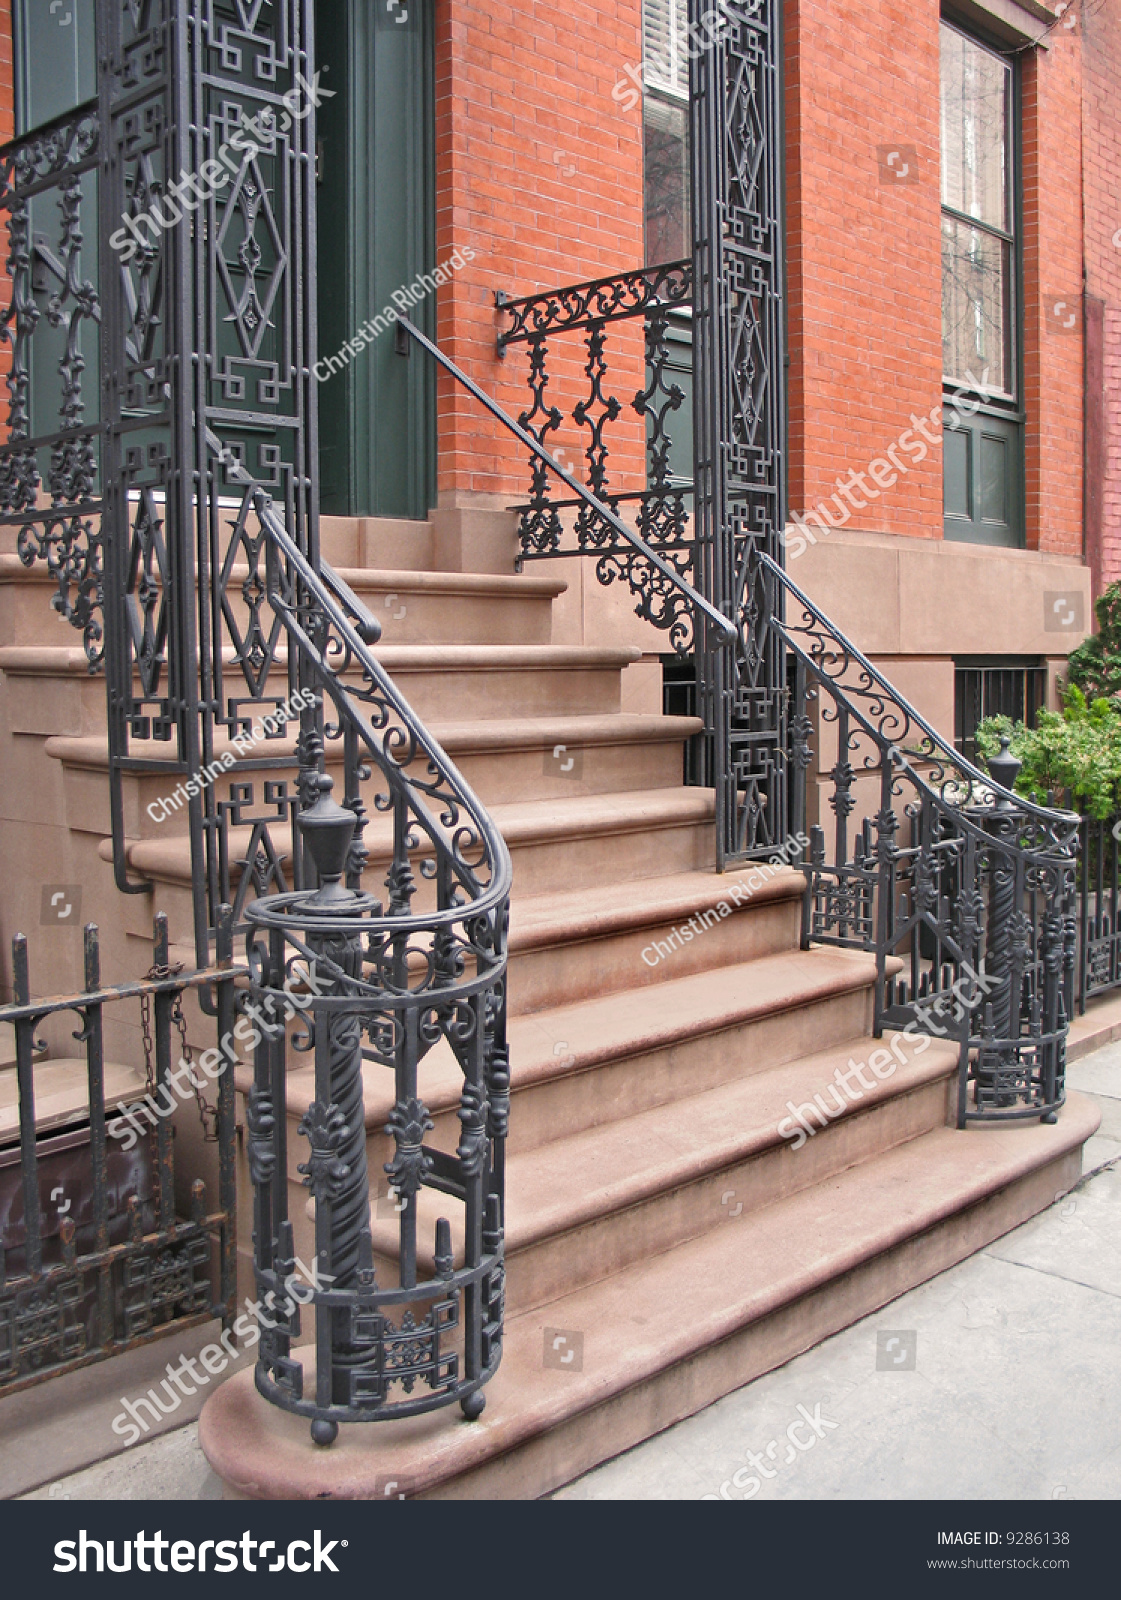 Entrance To Greenwich Village, Nyc Townhouse With Ornate